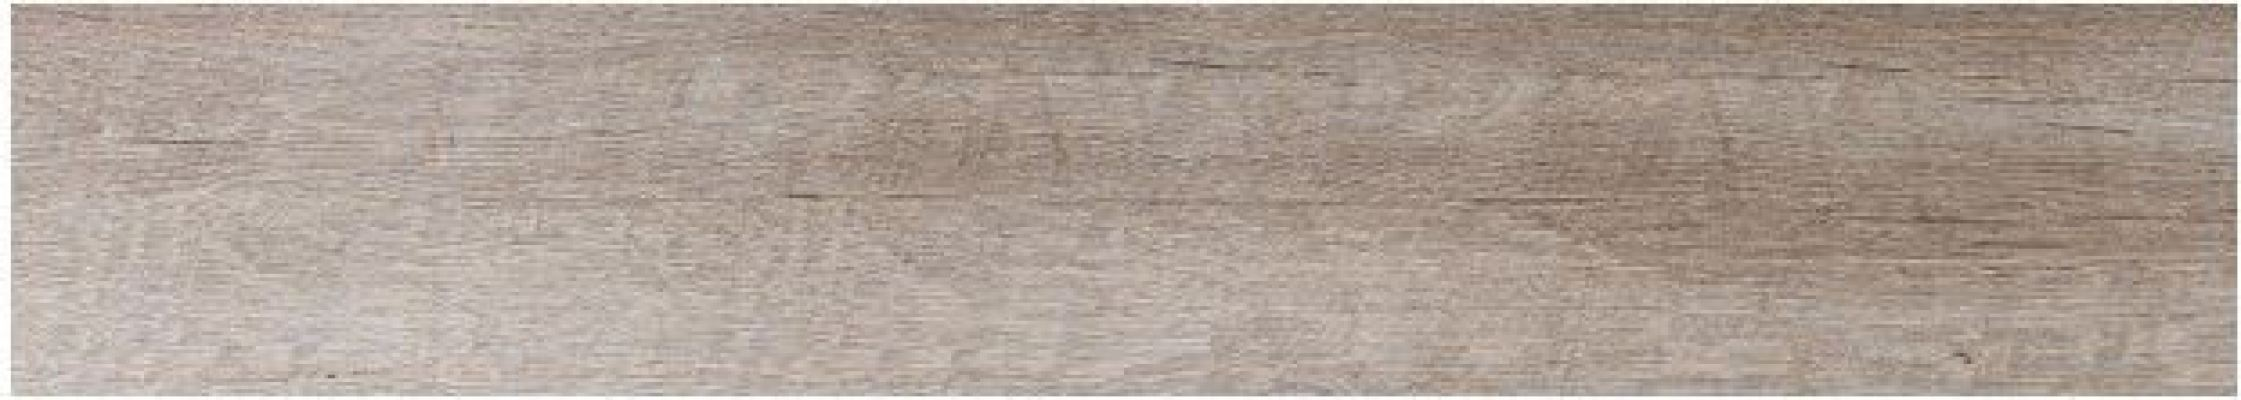 SAW-CUT 4MM DB4-2801C SOLSTICE BEIGE